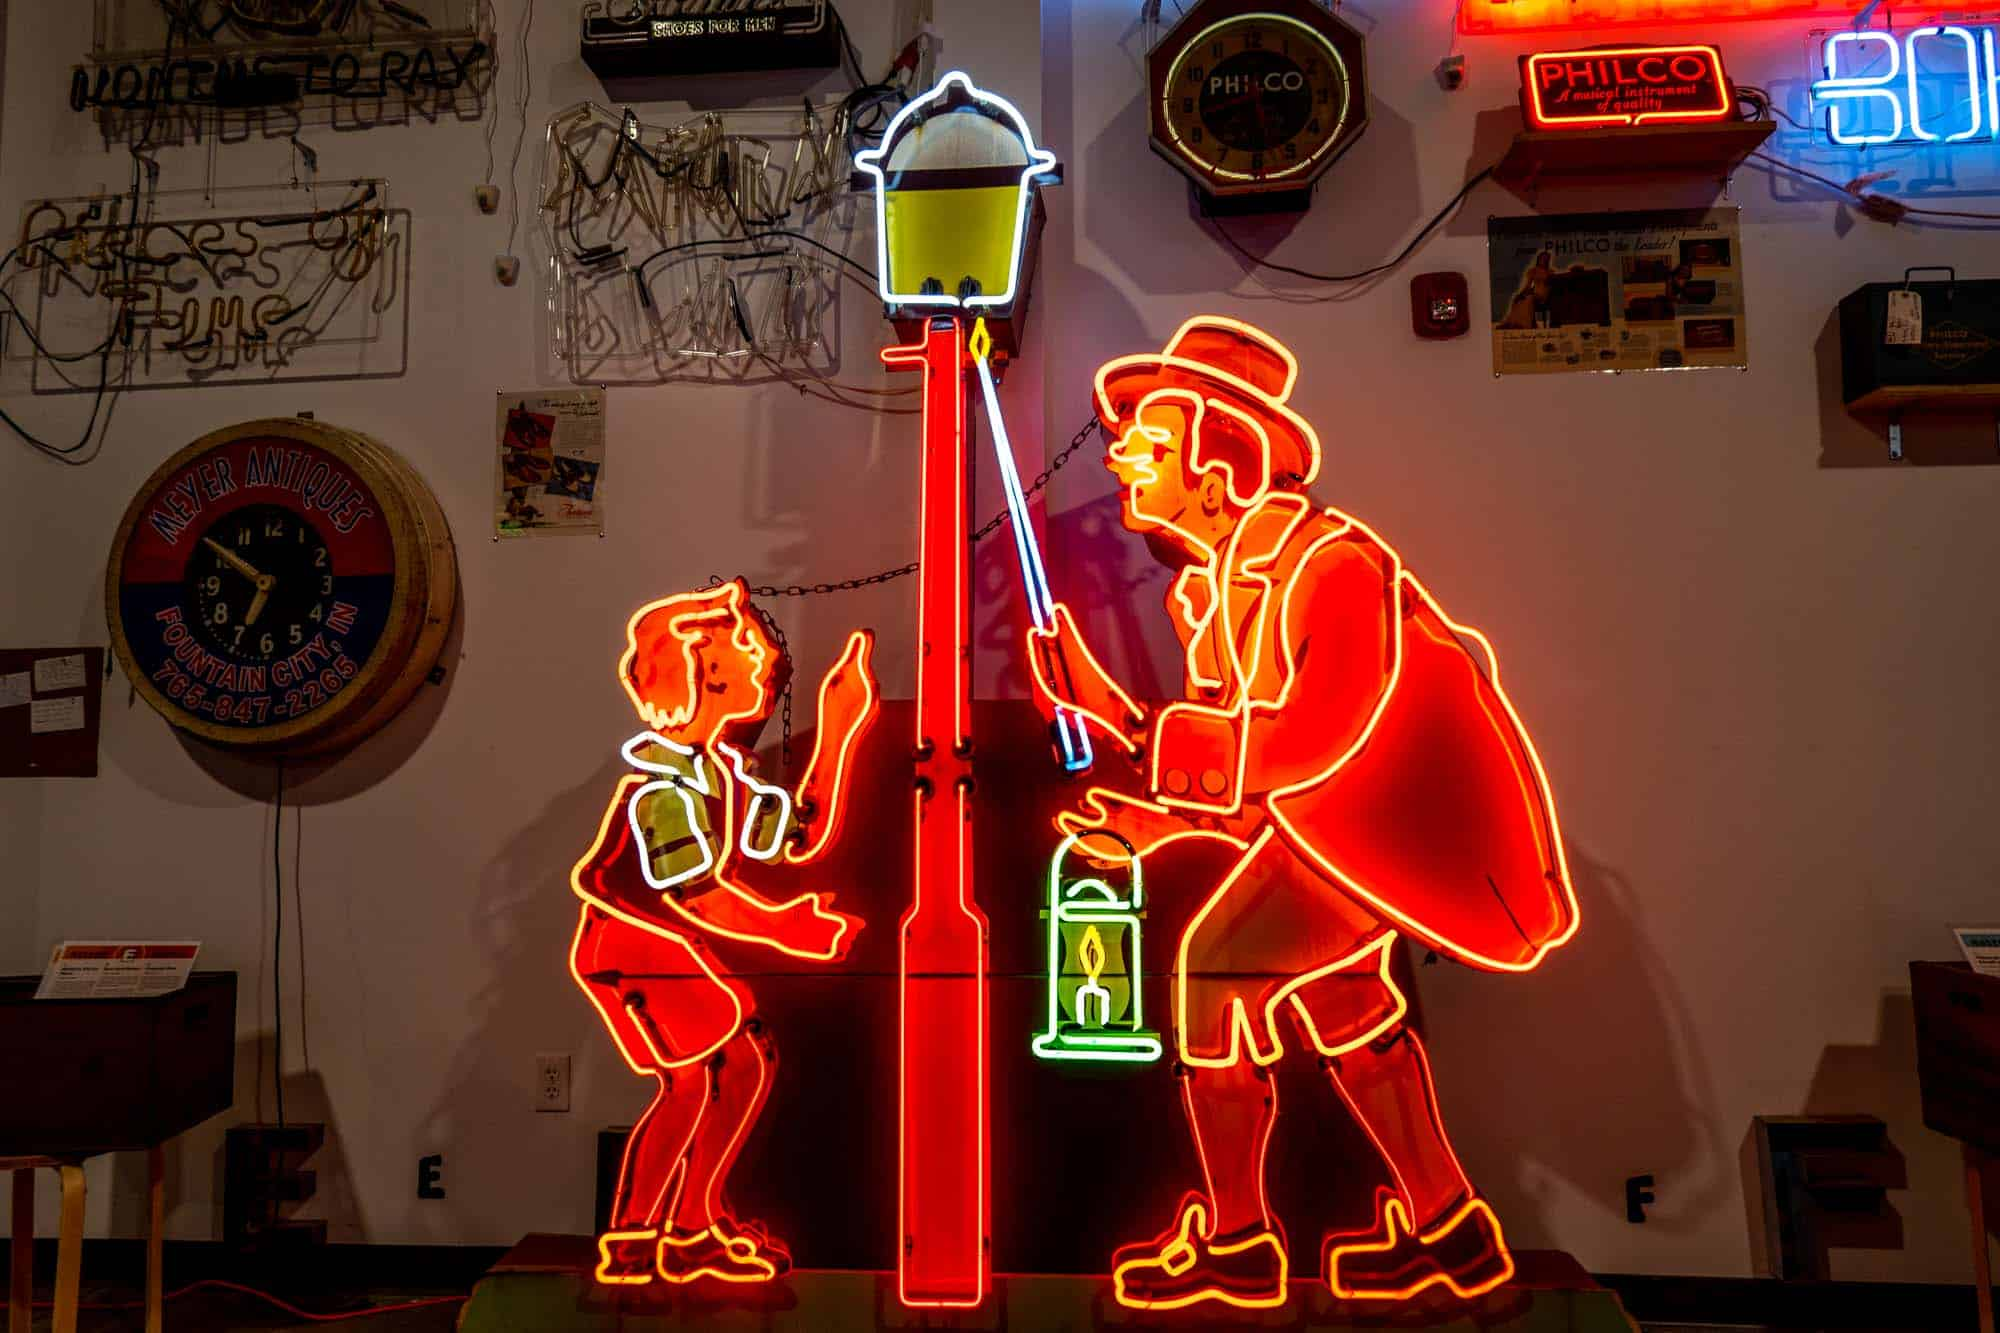 Large red neon sign showing a man lighting a street lamp beside a young boy